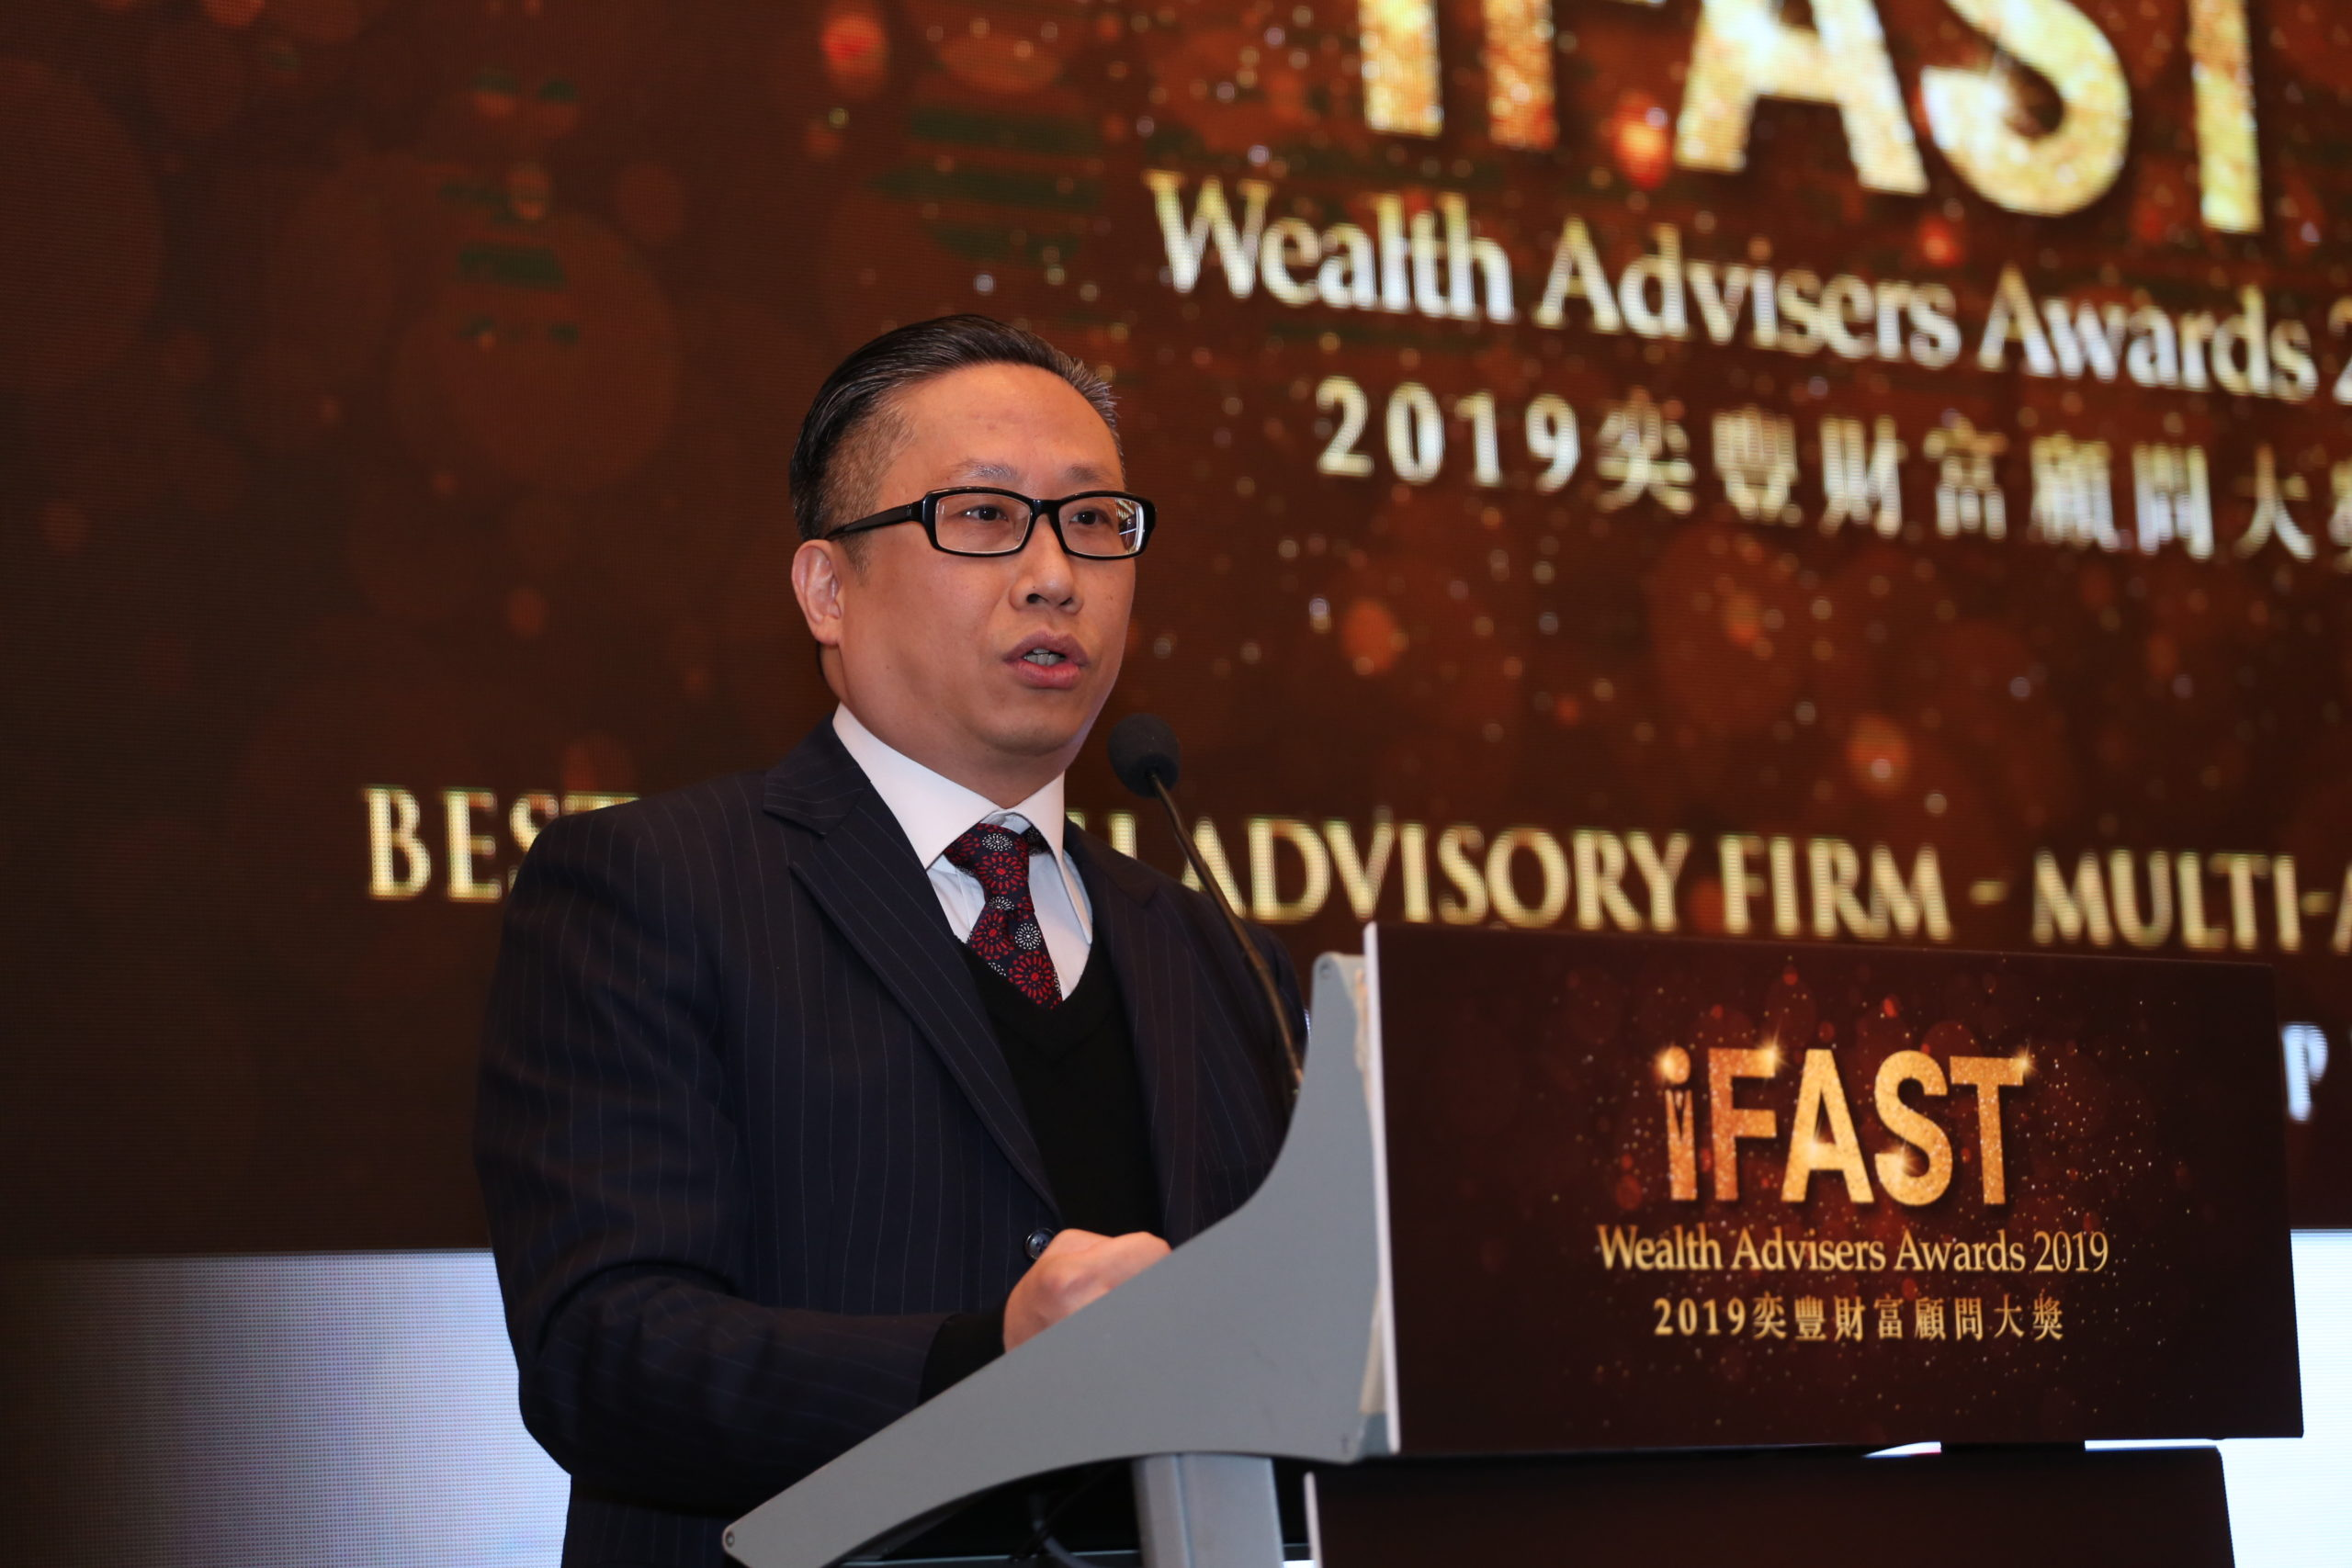 iFAST Wealth Advisers Awards 2019<br> - Multi-Asset Allocator